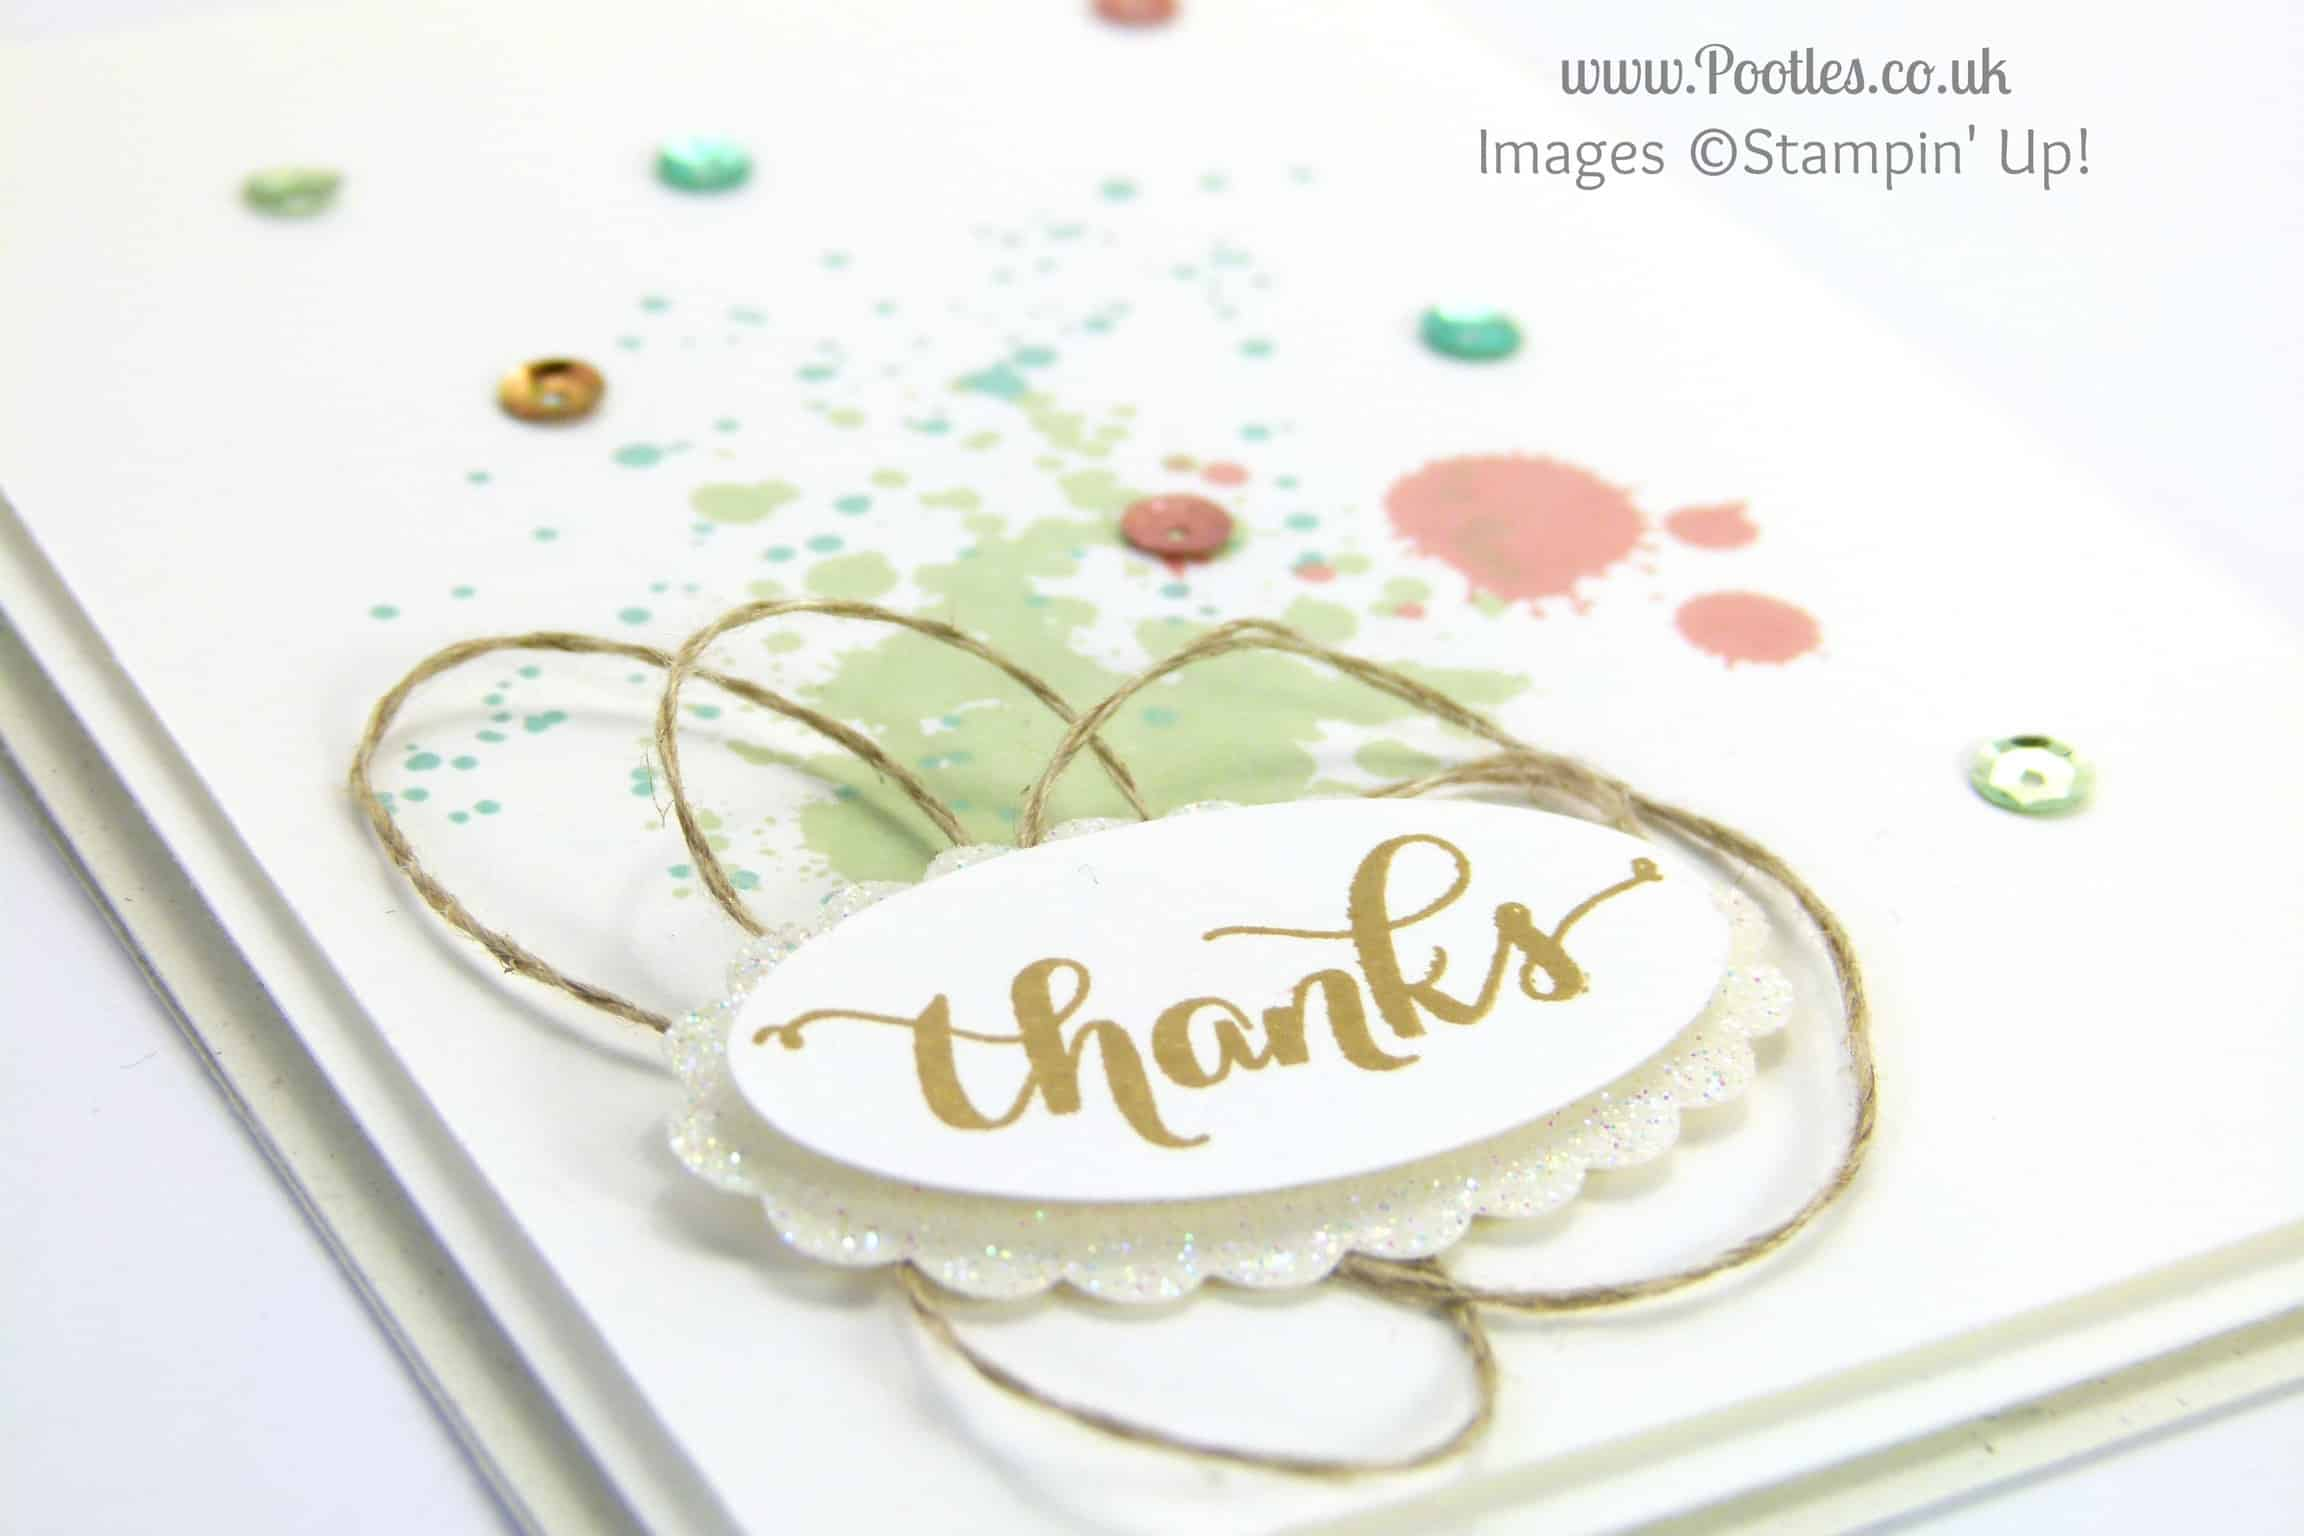 Stampin' Up! UK Demonstrator Pootles - Simple Sprinkles of Thanks! close up